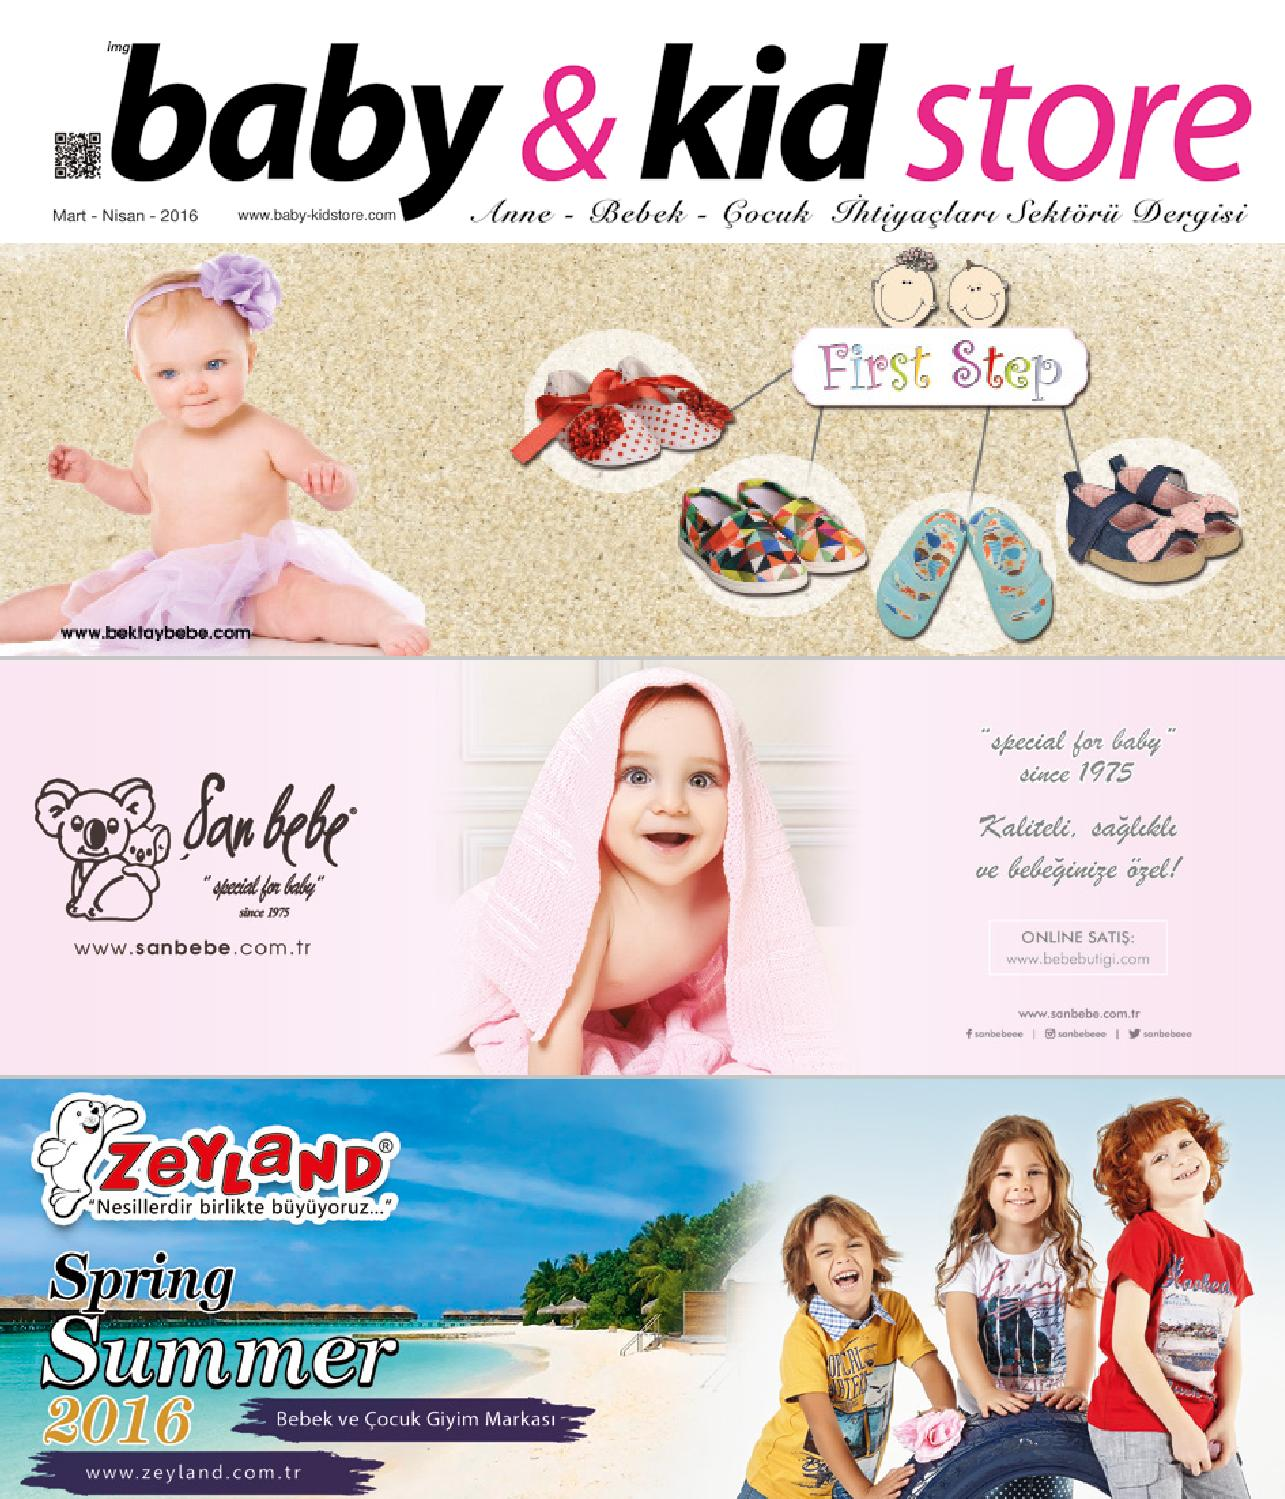 ded80bf16fcd9 Baby Kid & Store Mart/Nisan'16 by baby kid store - issuu